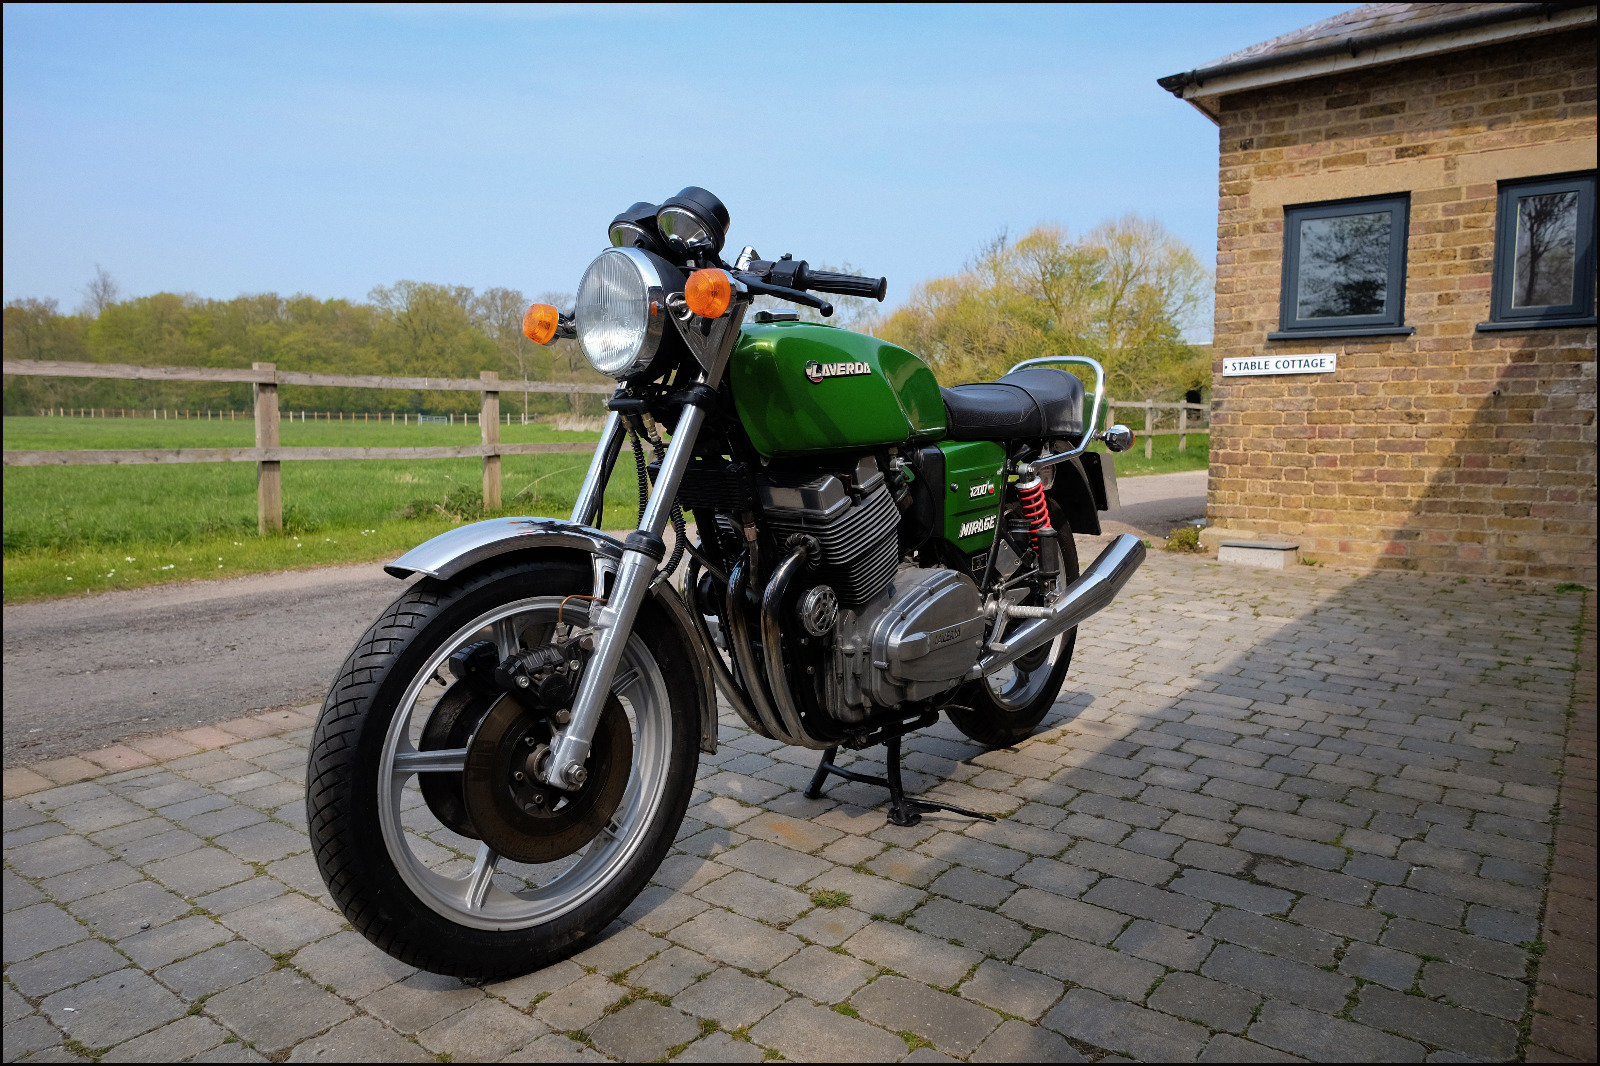 1980 Laverda Mirage1200 180° SOLD Subject to payment For Sale (picture 1 of 6)